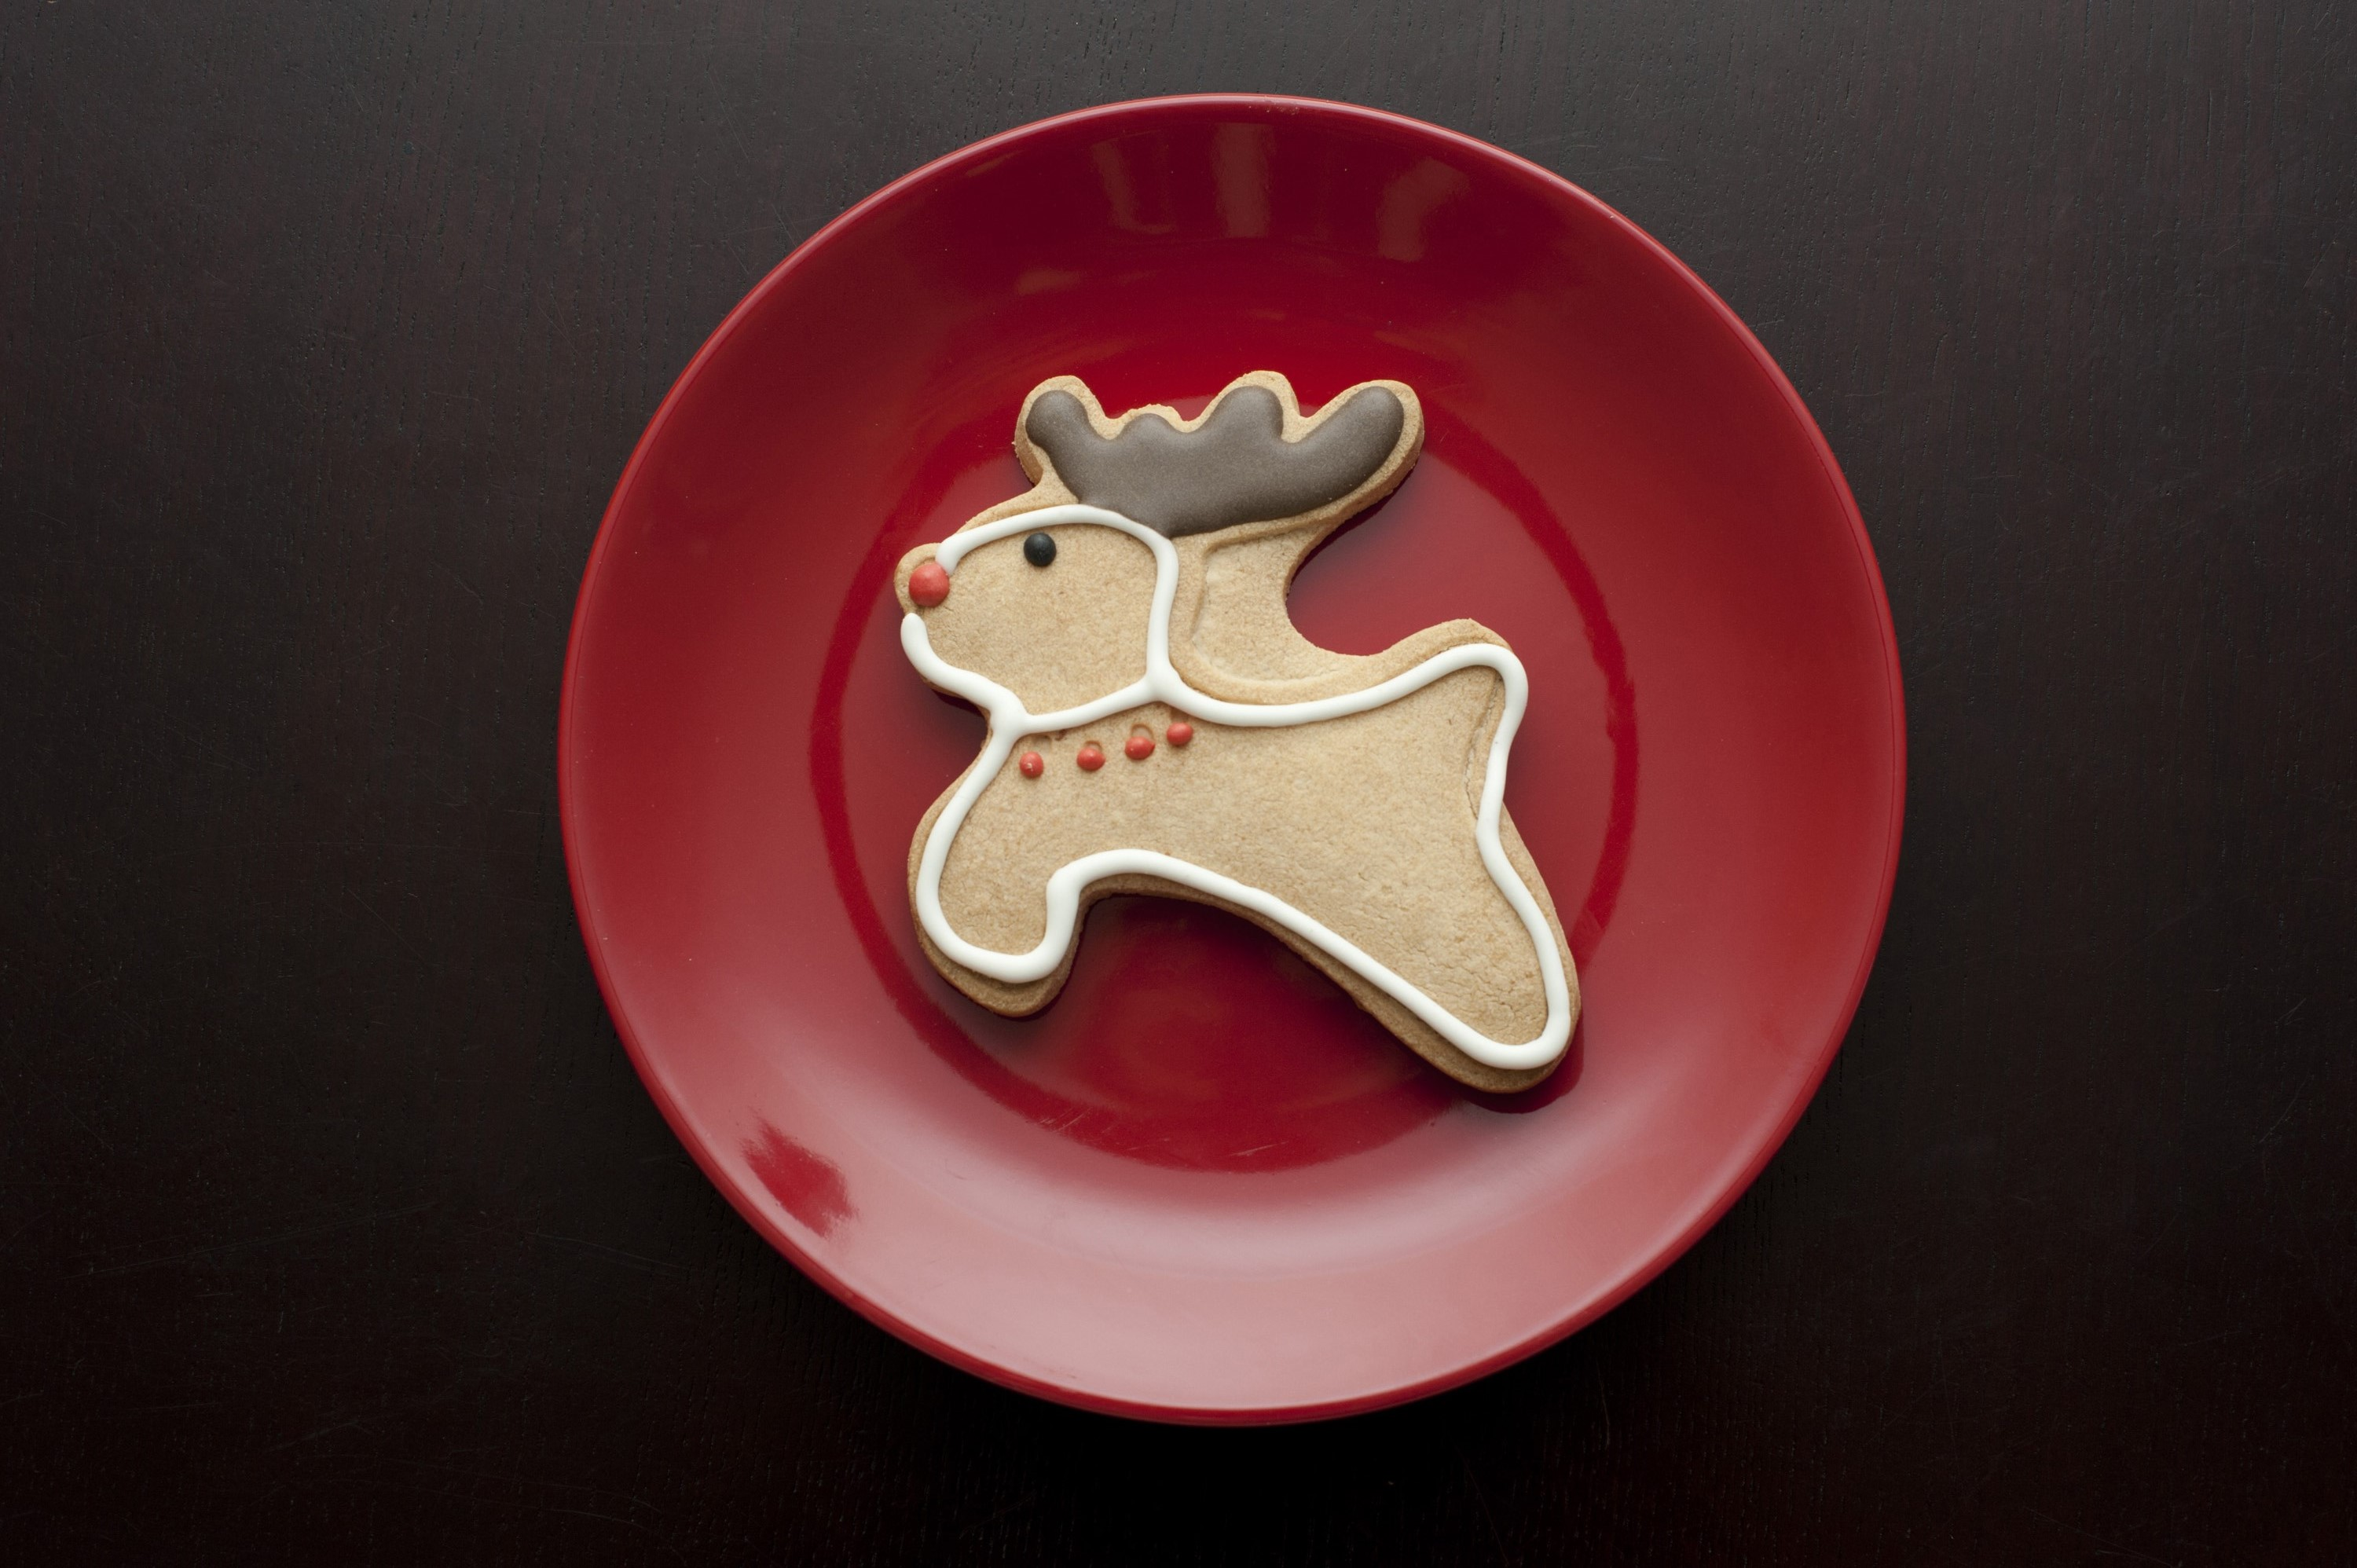 Overhead view of a single decorated gingerbread reindeer cookie with a red nose and collar and chocolate antlers for celebrating the Christmas season